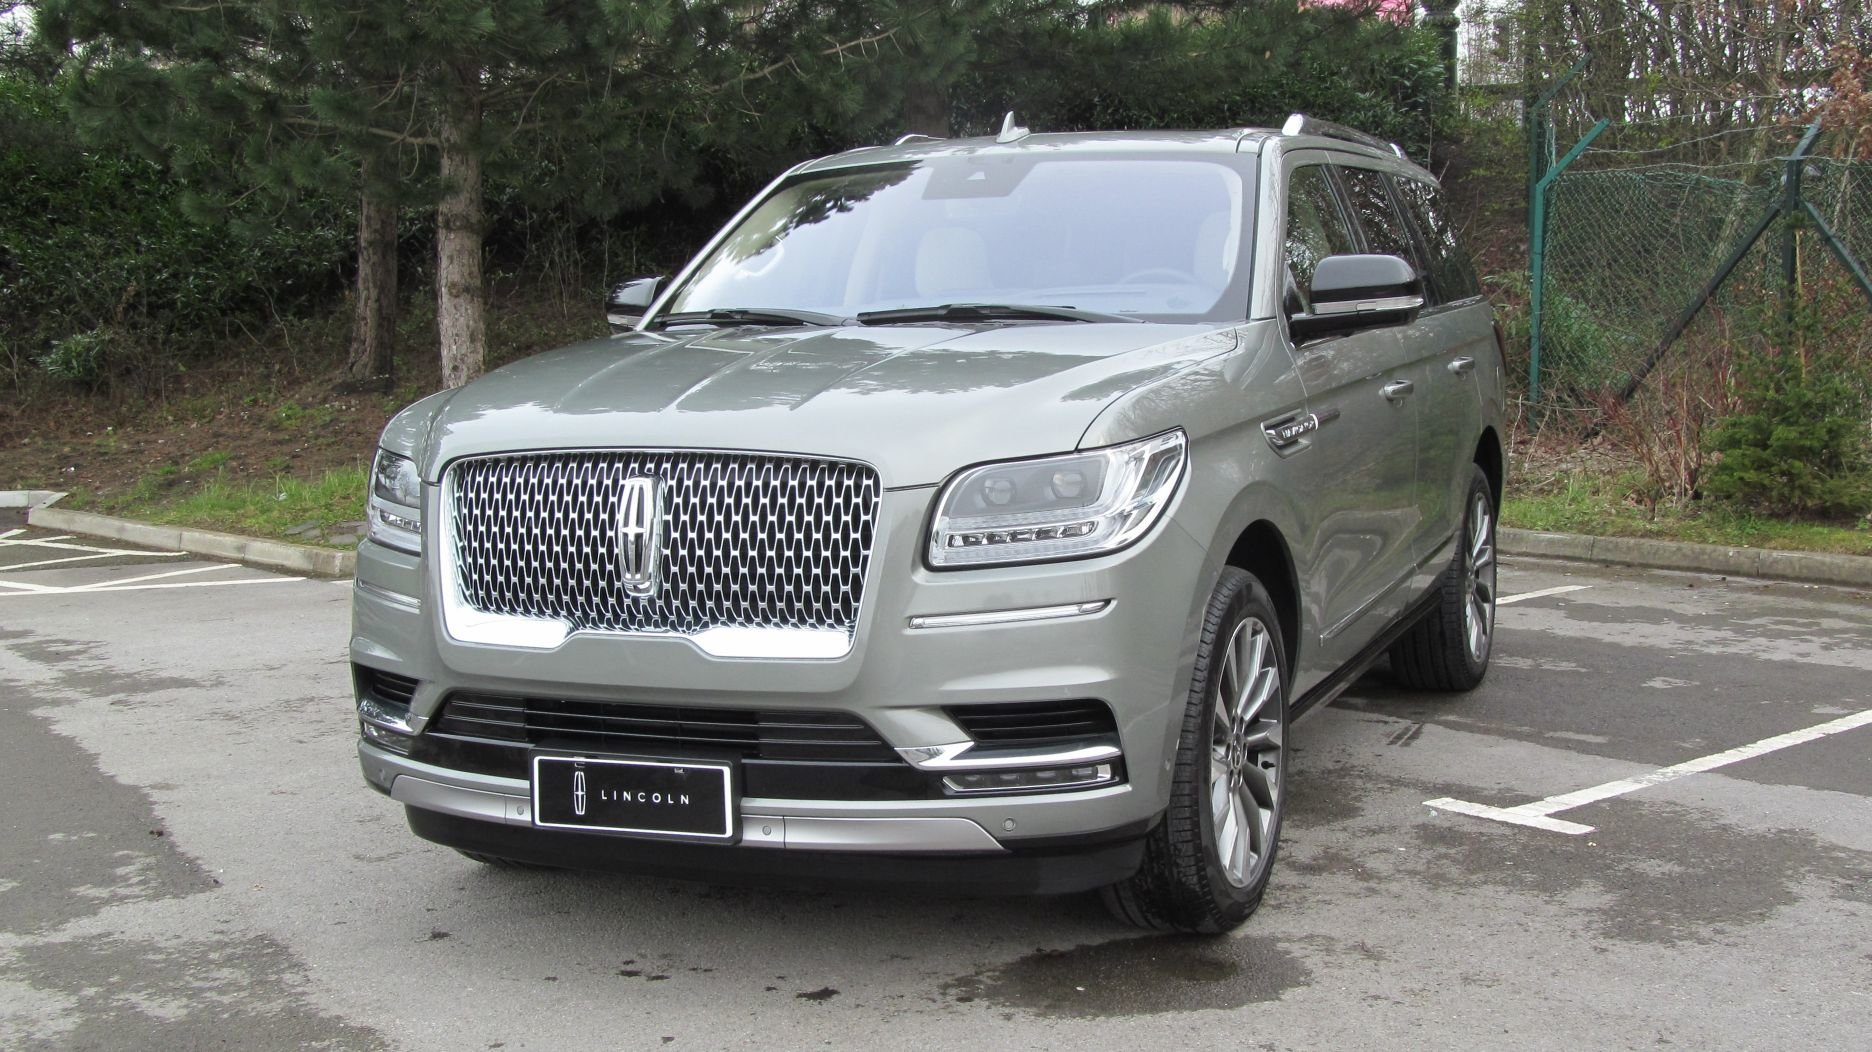 2019 Lincoln Navigator reserve 3.5L V6 Twin Turbo 4x4 For Sale (picture 1 of 6)